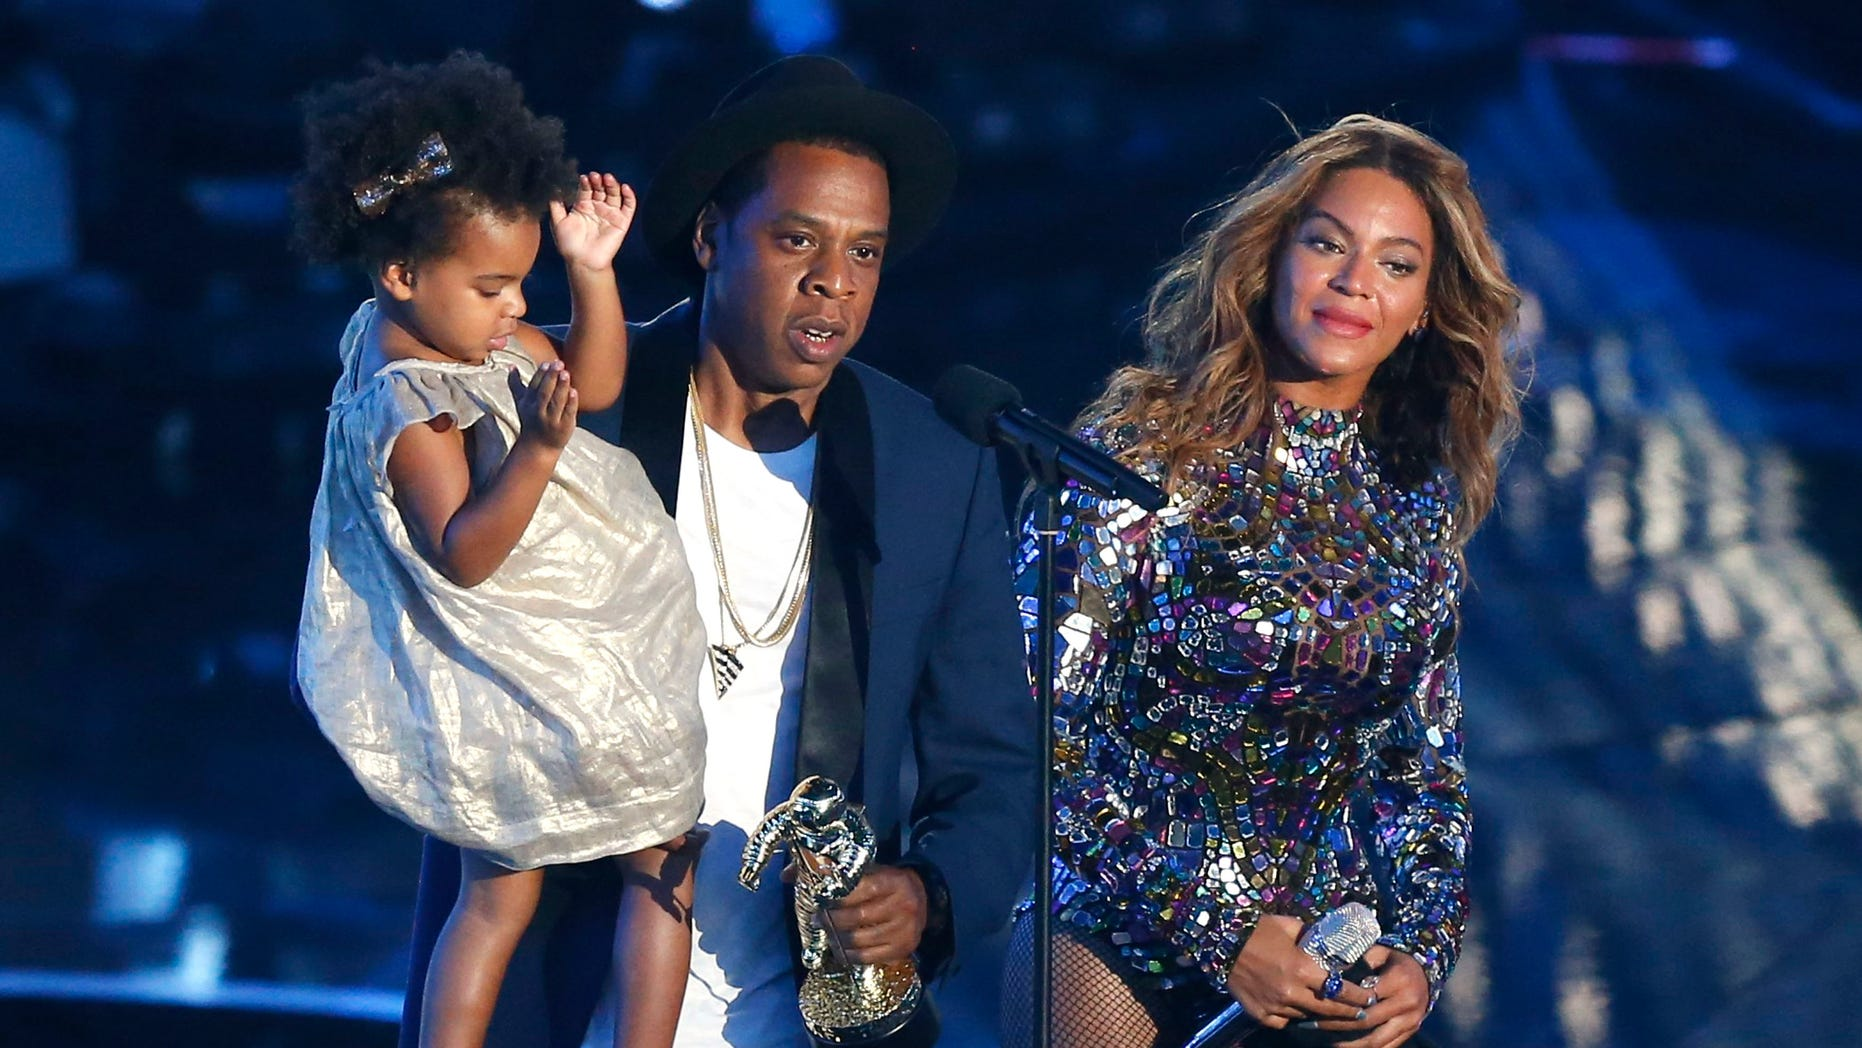 Jay-Z presents the Video Vanguard Award to Beyonce as he holds their daughter Blue Ivy during the 2014 MTV Video Music Awards in Inglewood, California August 24, 2014.  REUTERS/Mario Anzuoni (UNITED STATES - Tags: ENTERTAINMENT)(MTV-SHOW) - RTR43KSX